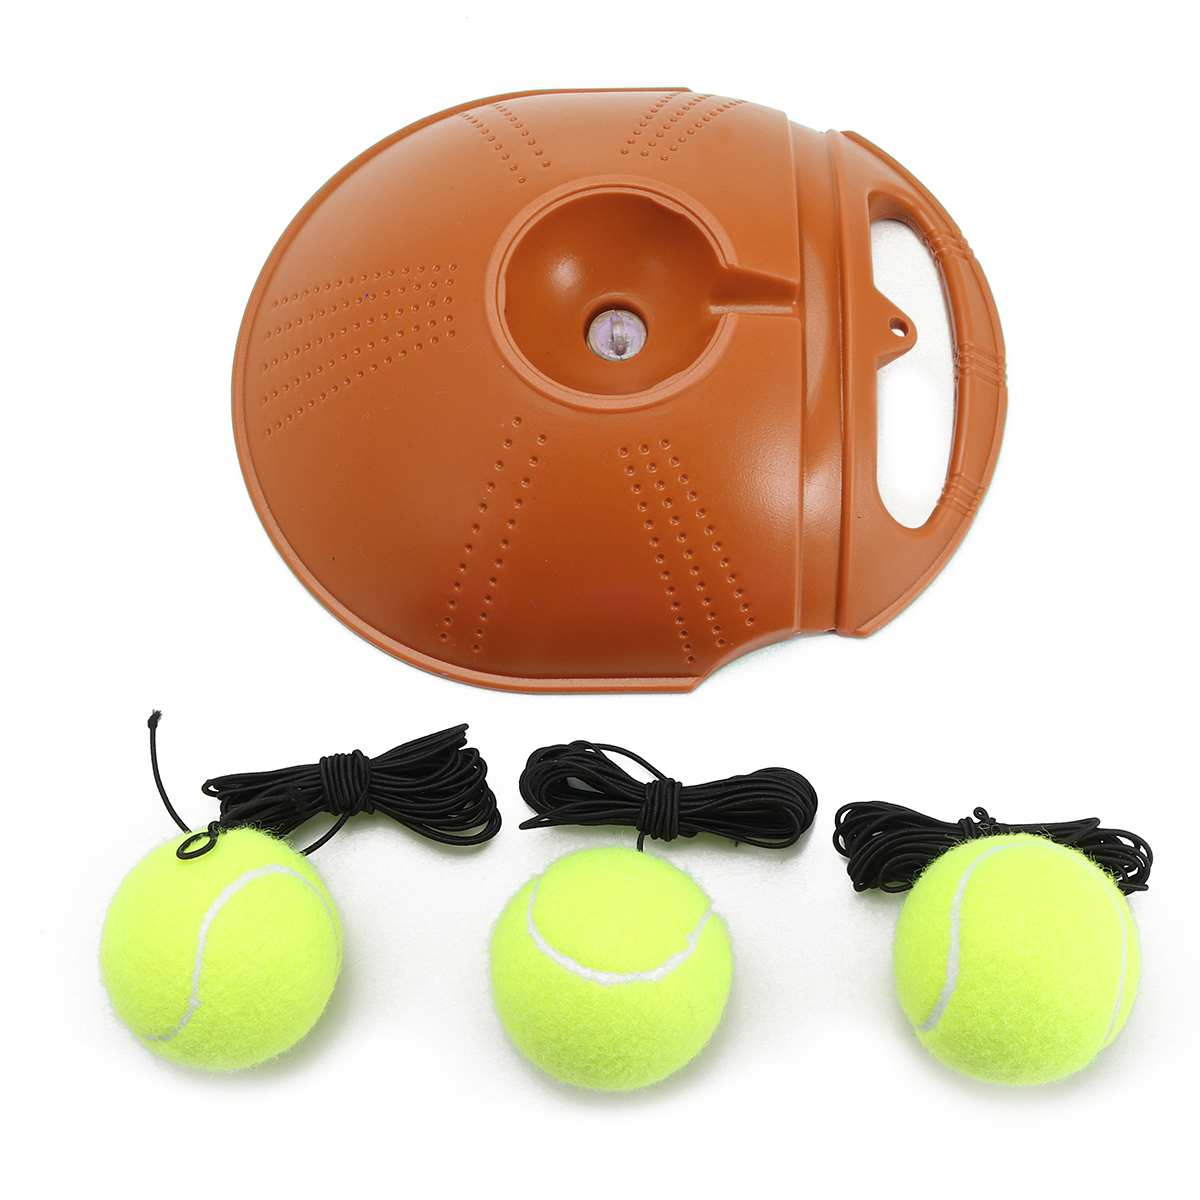 Tennis Trainer and Self-study Tennis Training Tool with Rebound Balls and Baseboard 4